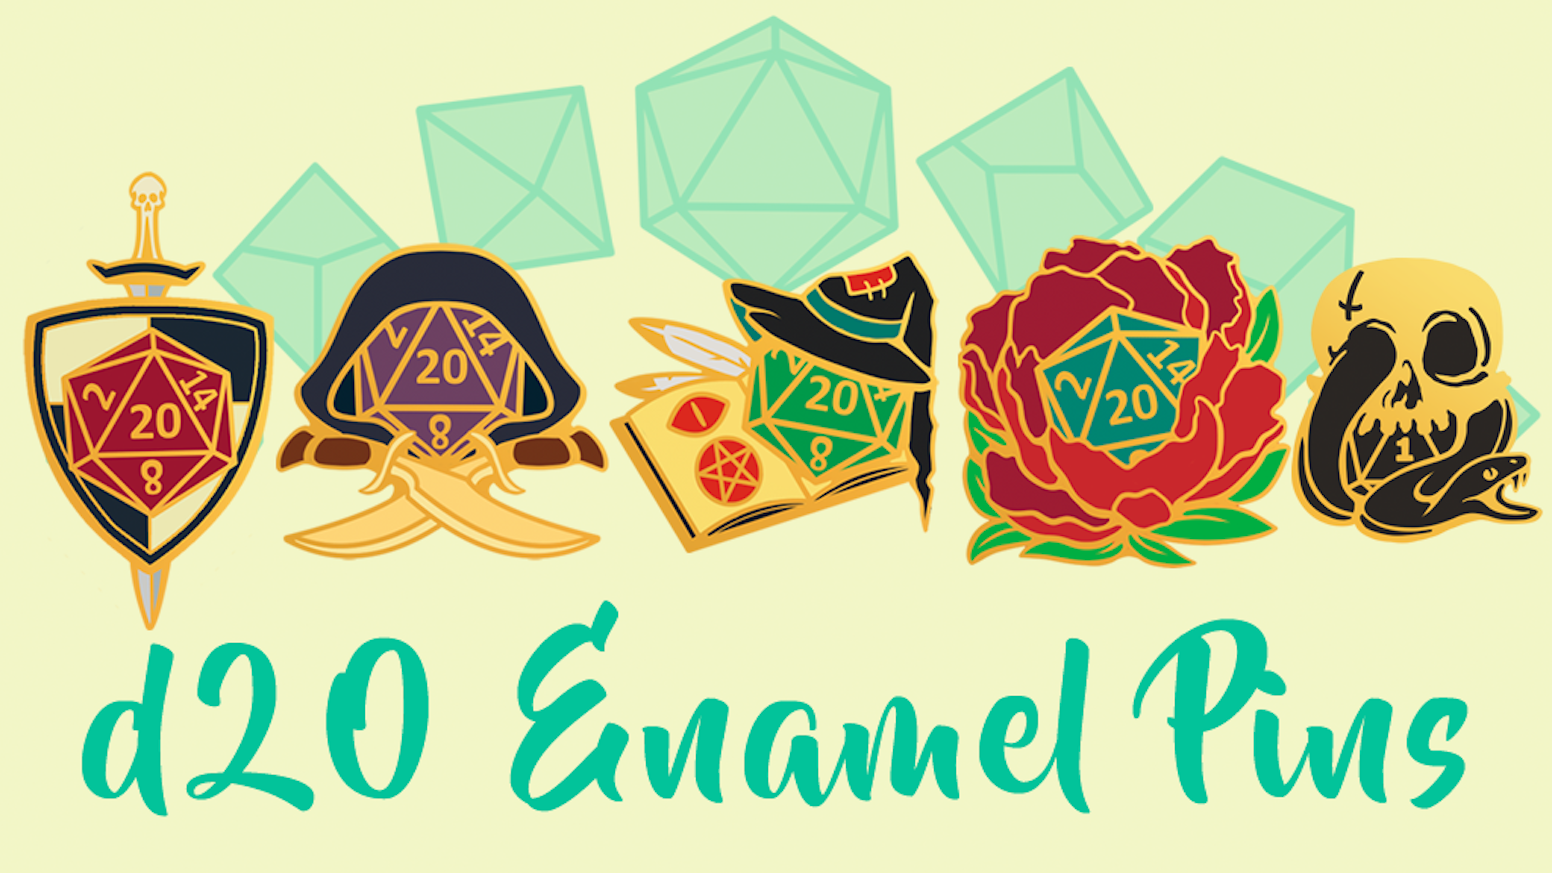 D20 Enamel Pins is a set of gold hard enamel pins inspired by different classes from Dungeons & Dragons!